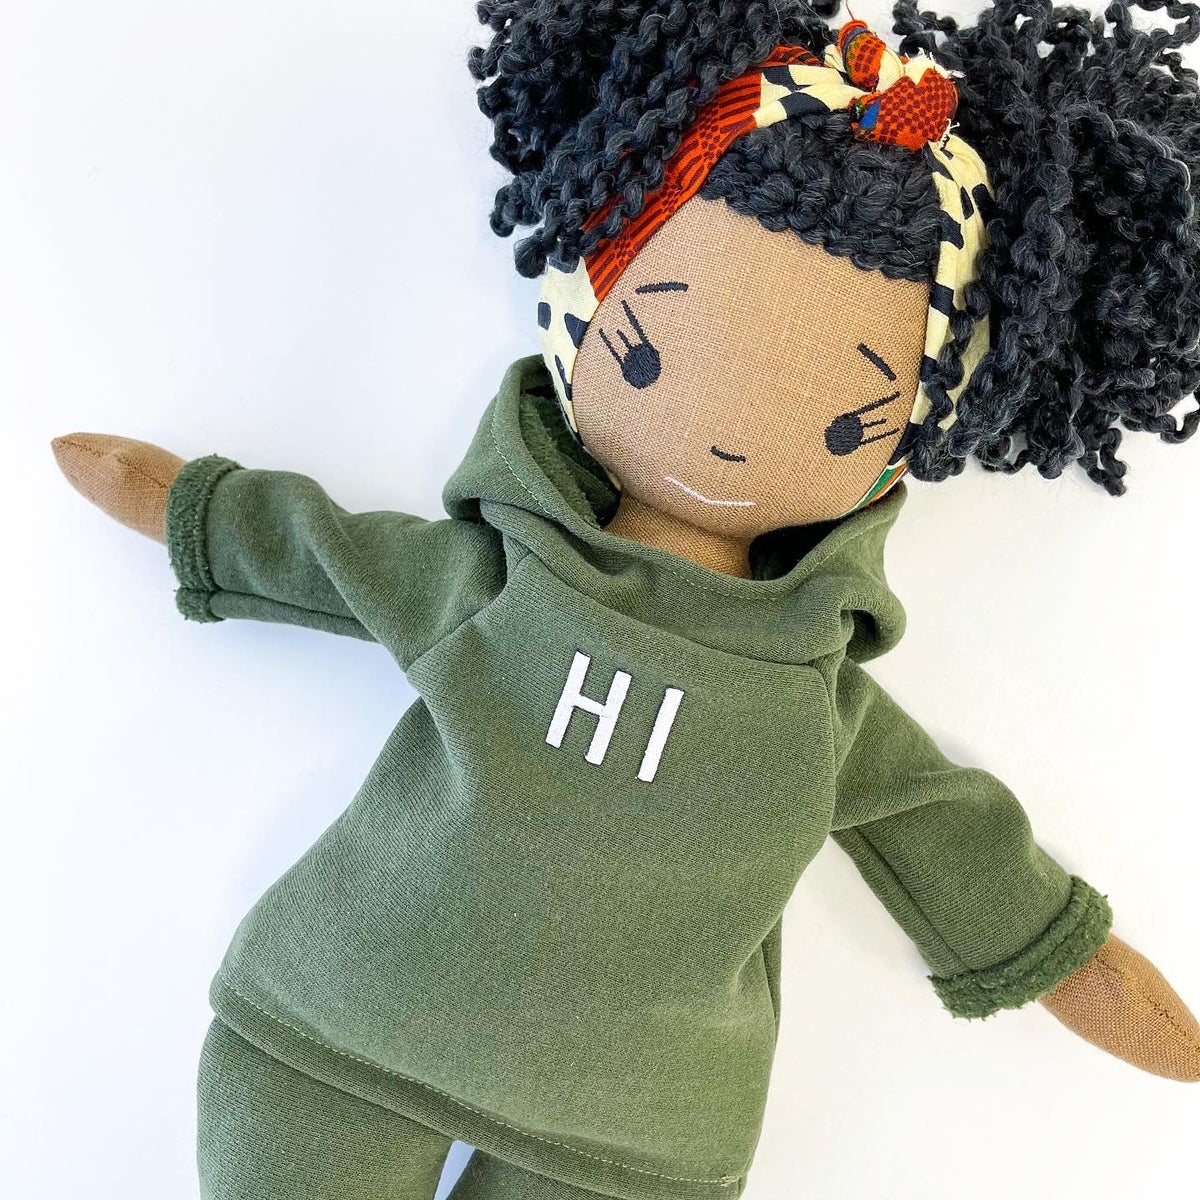 Londynn More to Love Handmade Linen Doll ( AVAILABLE JULY 1 2021)